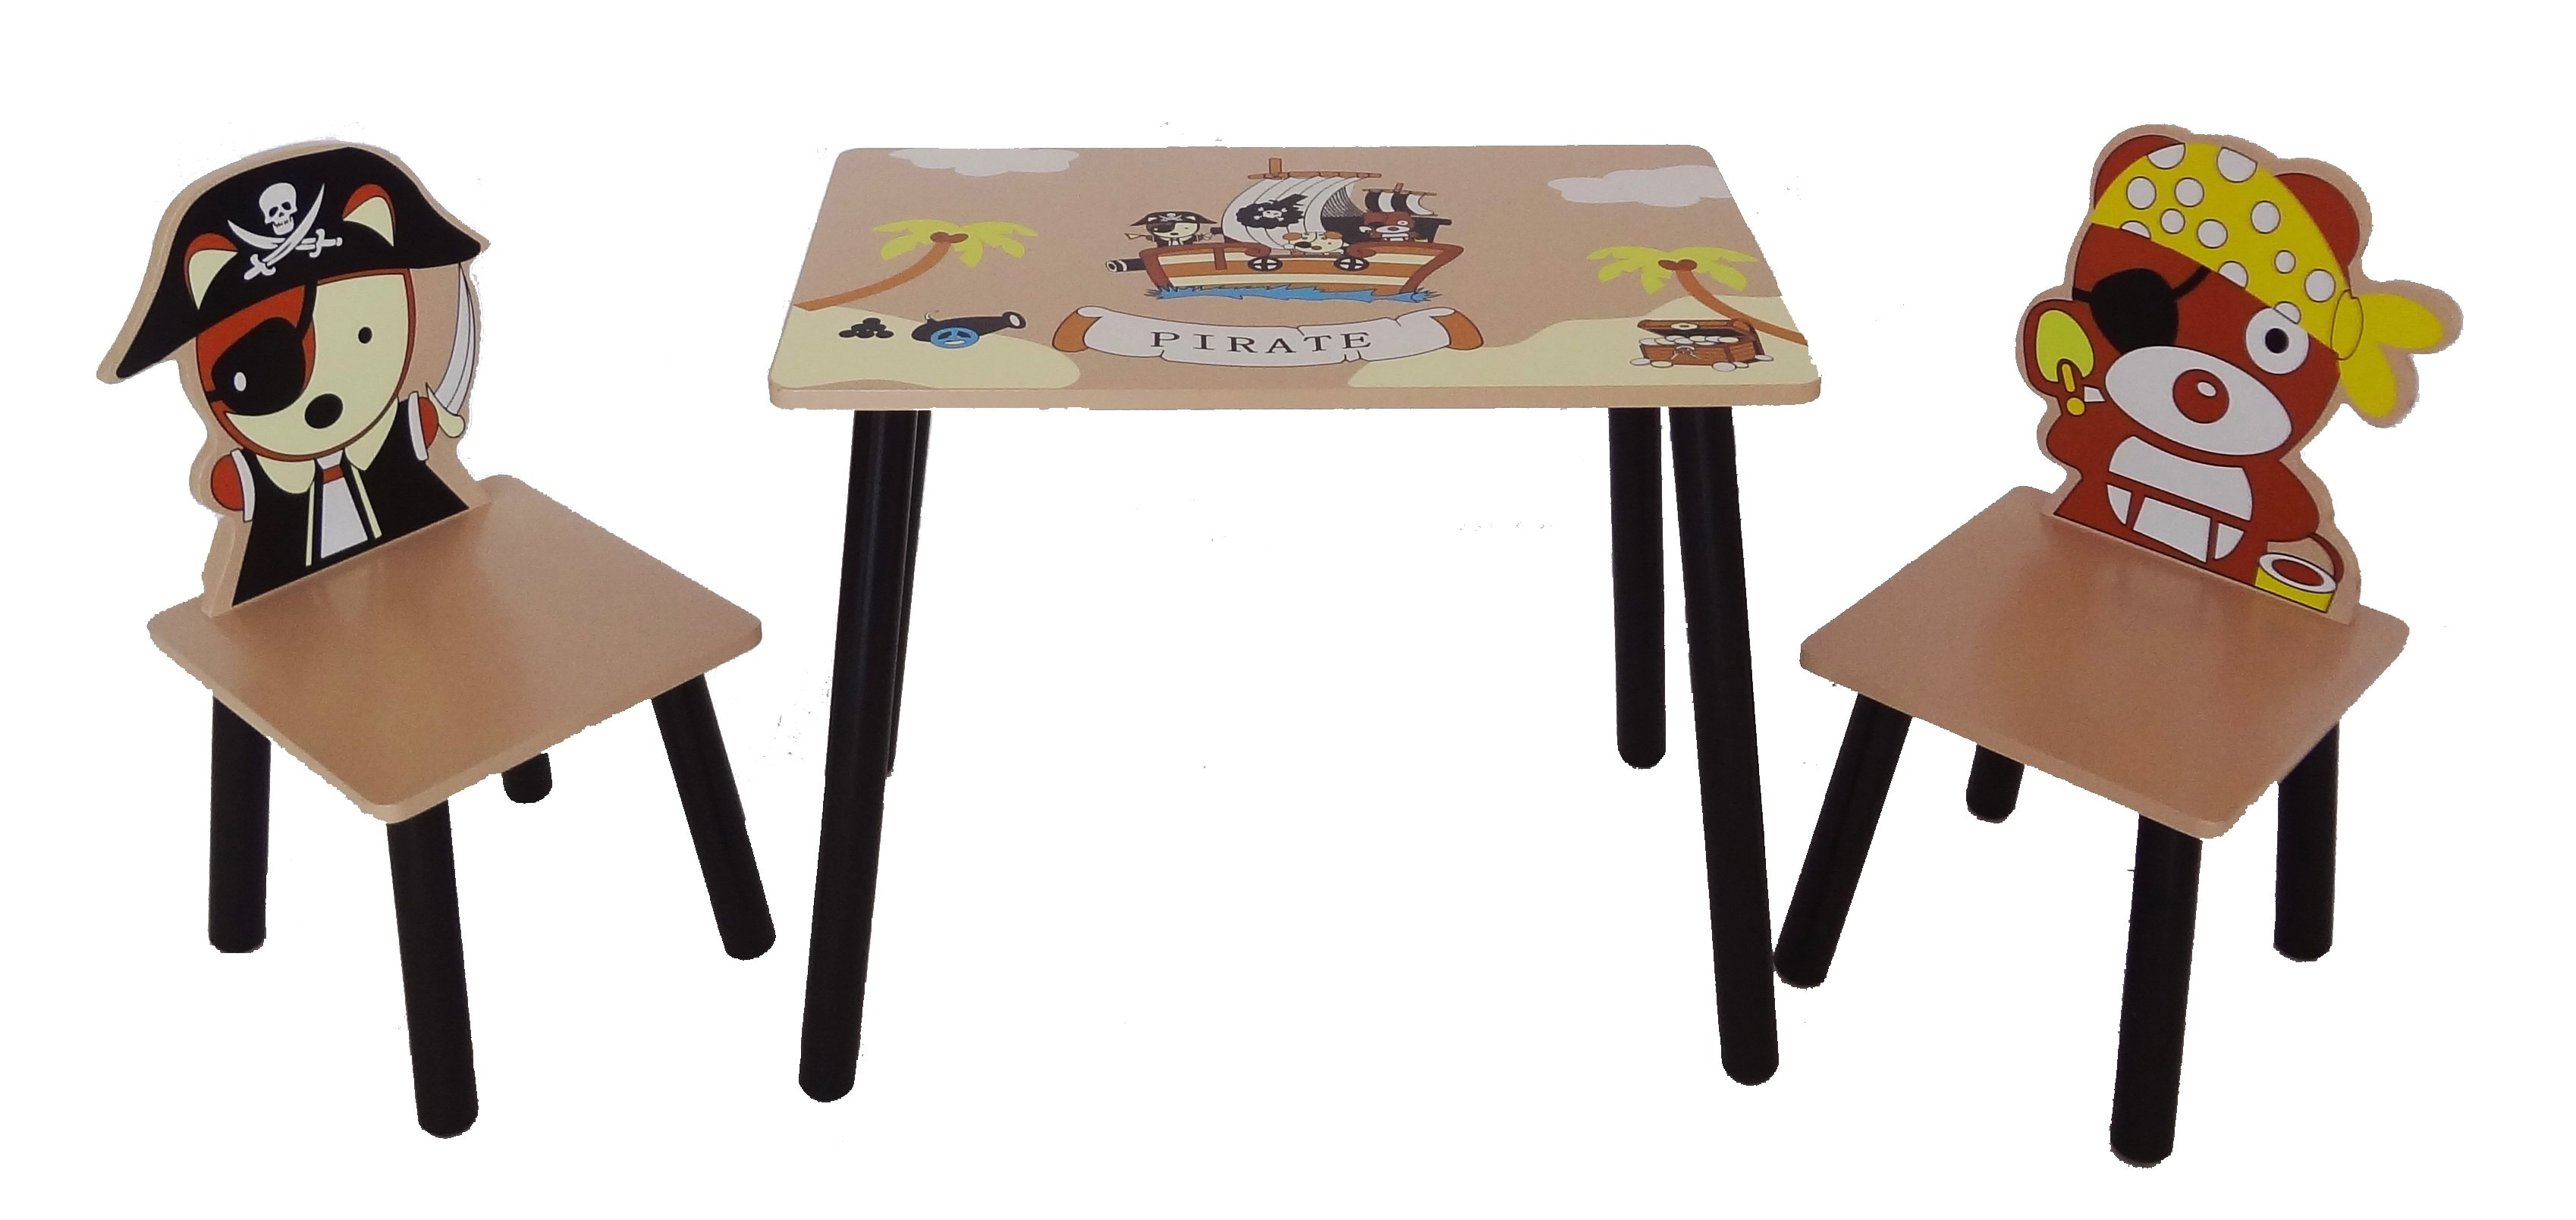 Pirate Table & Chair Set-494